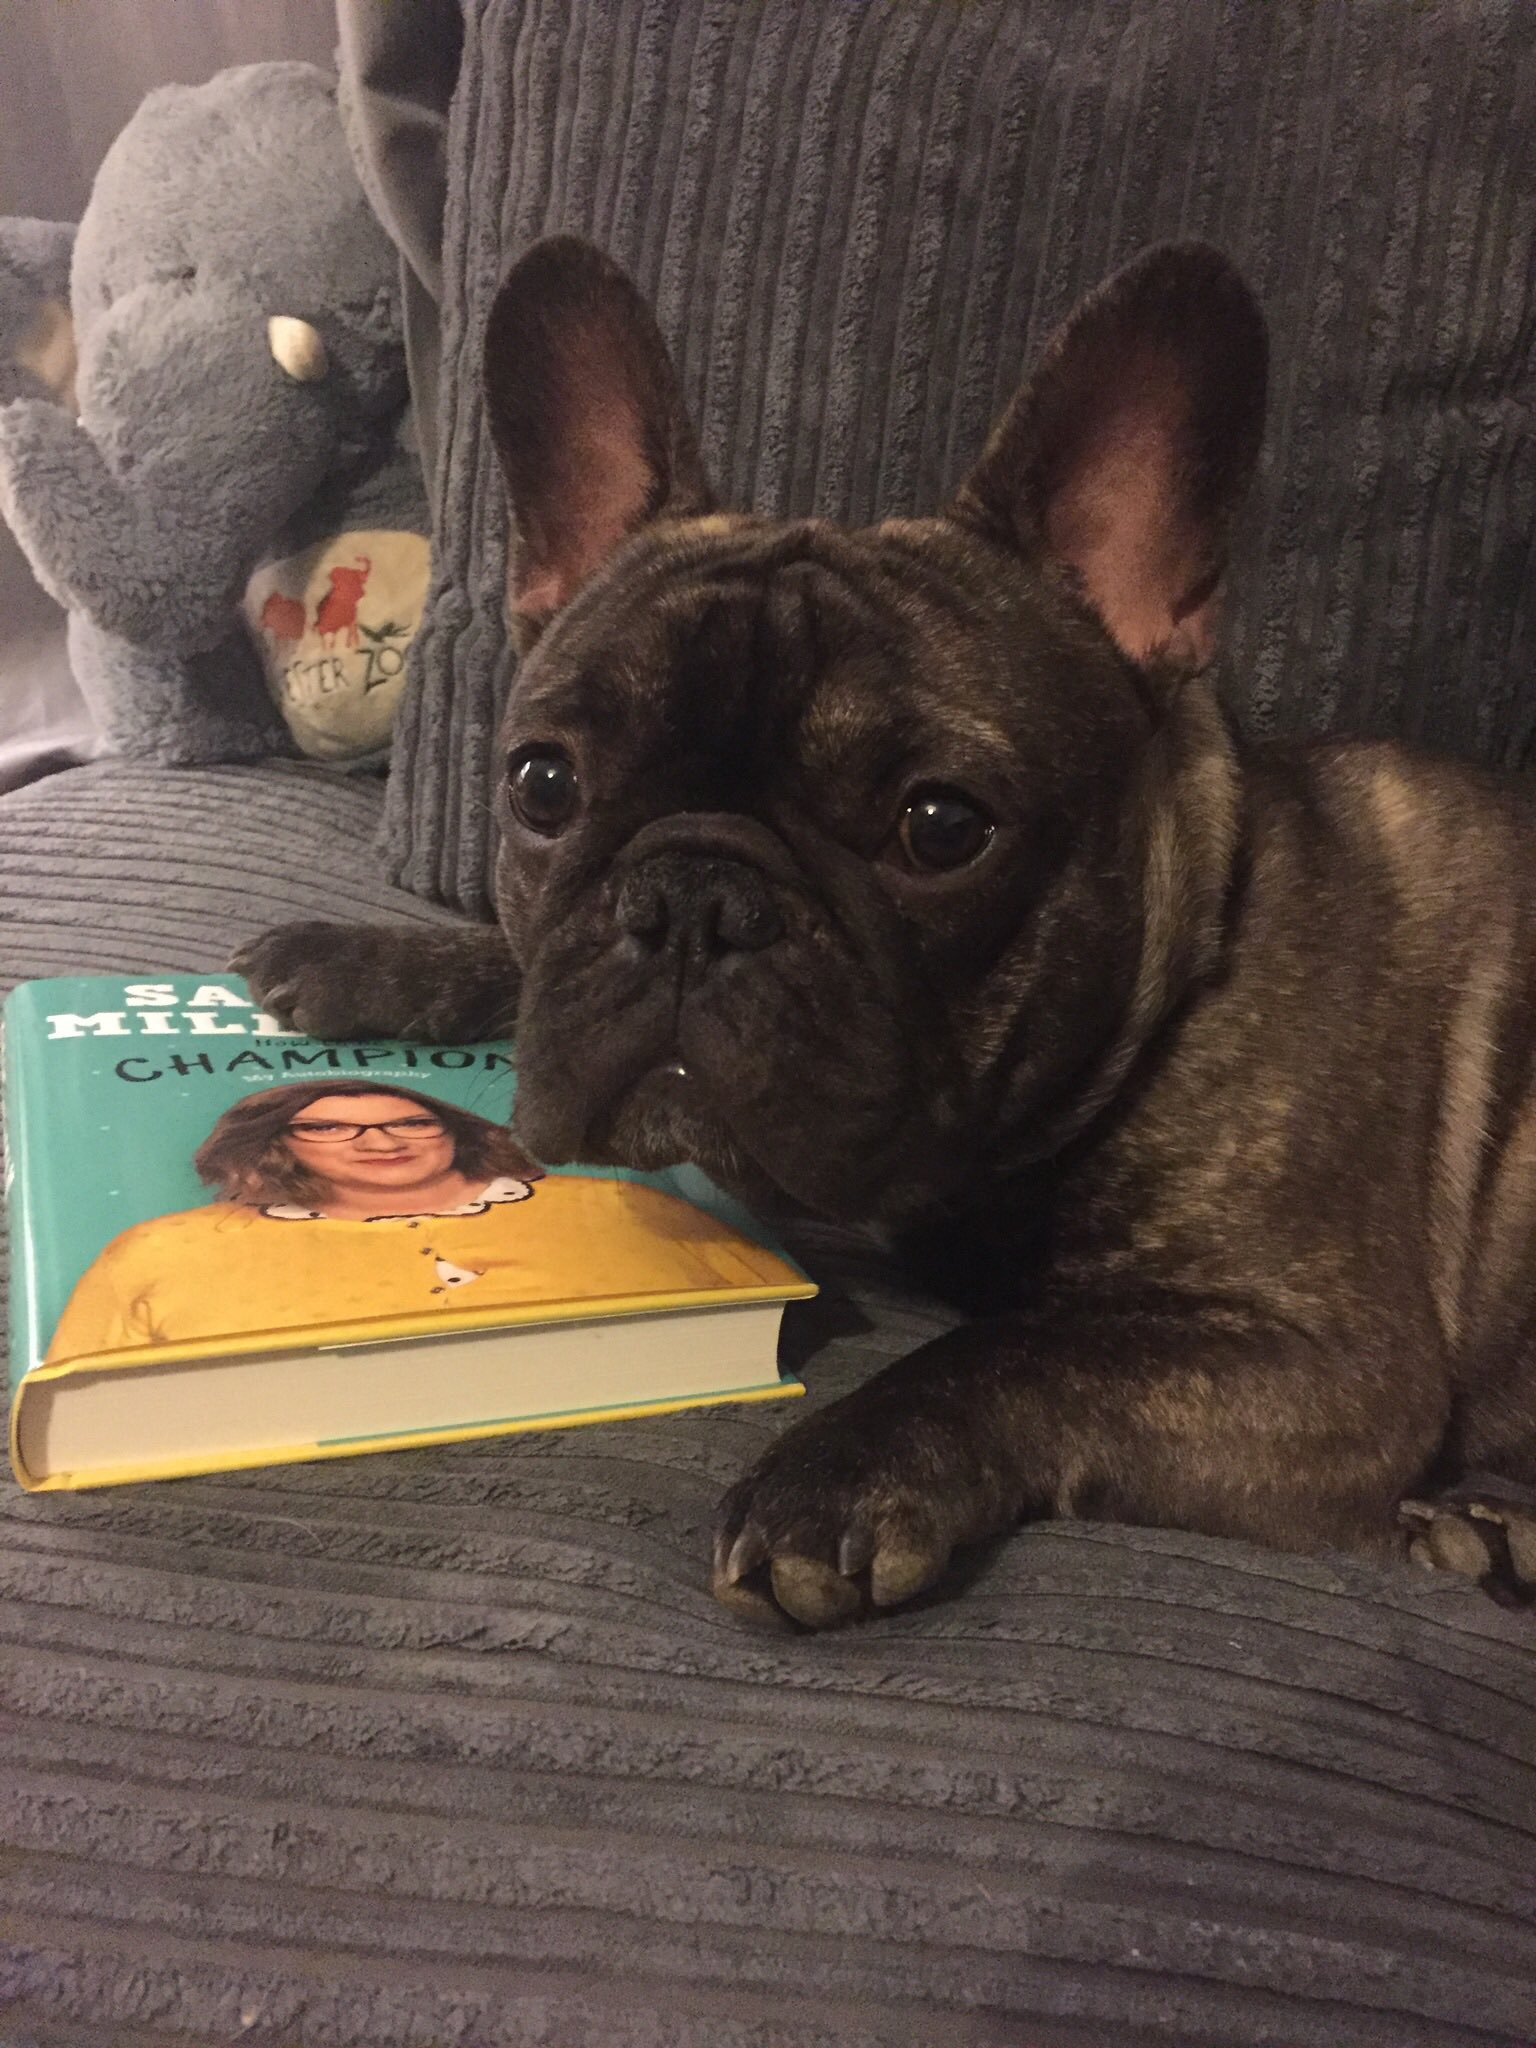 RT @KerrynBrannigan: @SarahMillican75 Archie seems like he wants the book to himself! https://t.co/mfRFKlLCyf